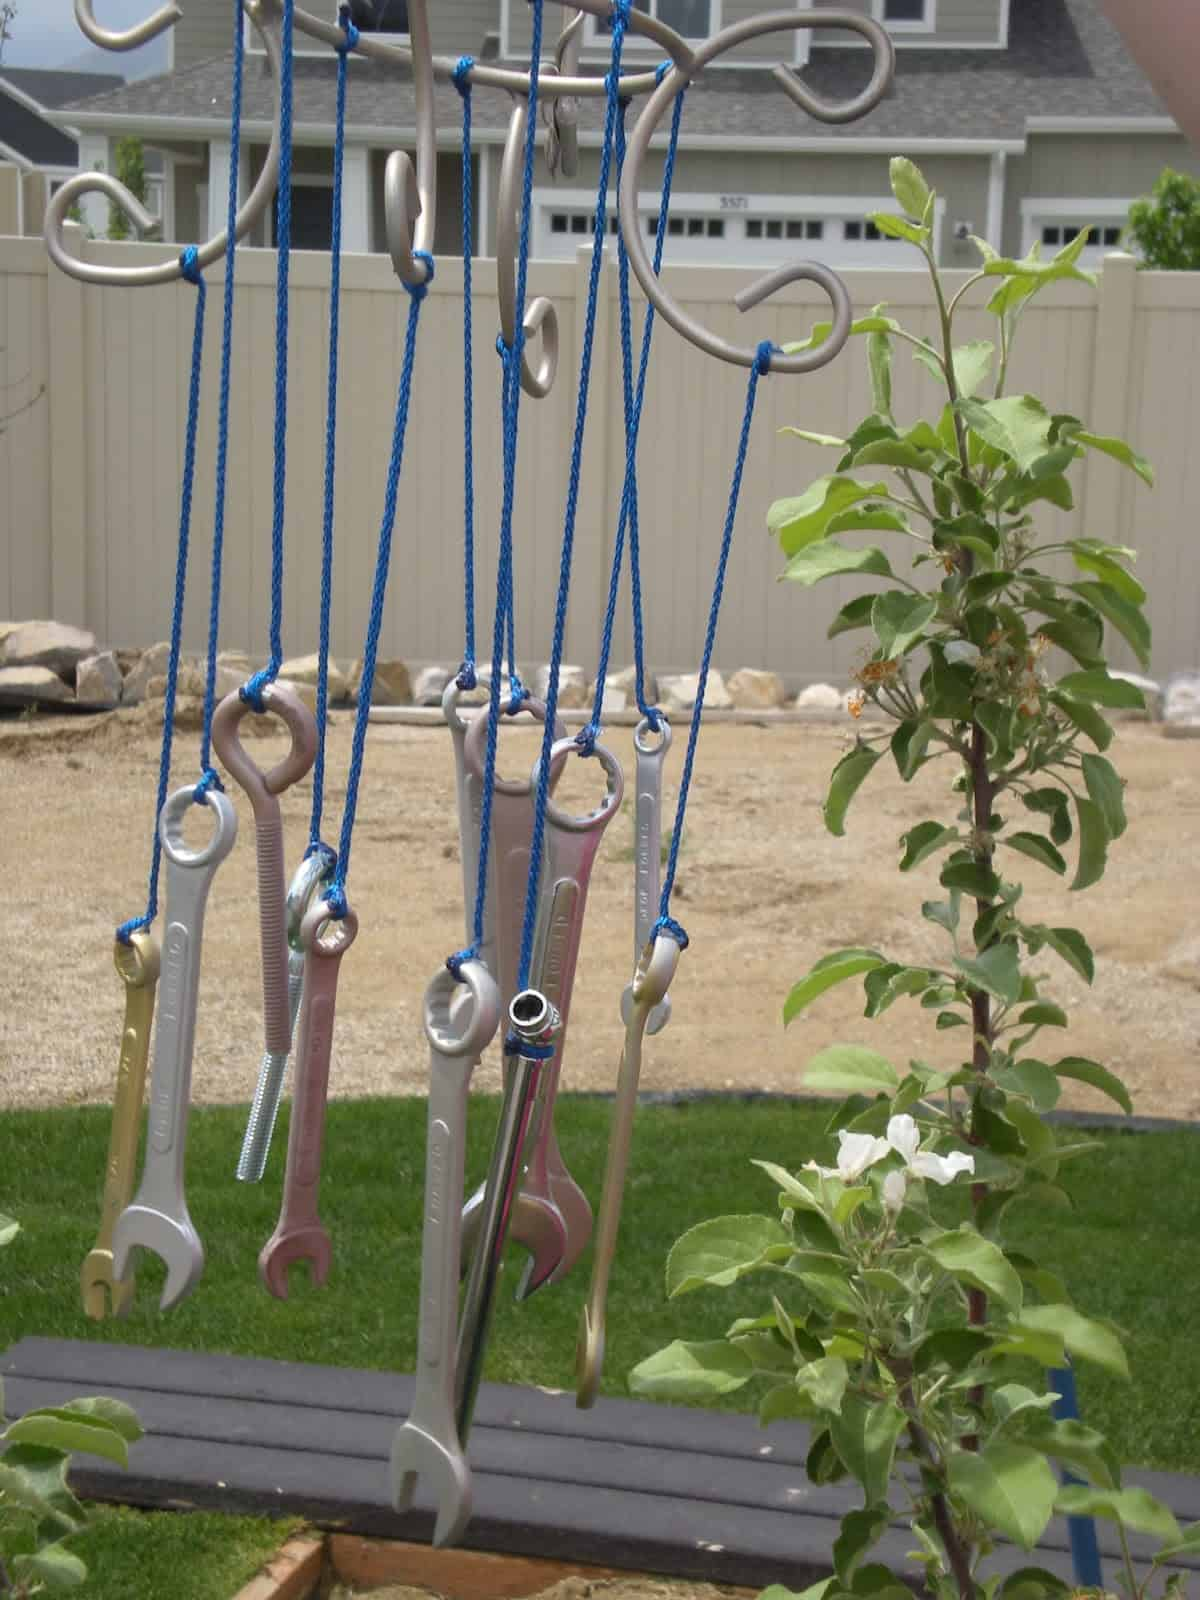 Upcycled wrench chimes